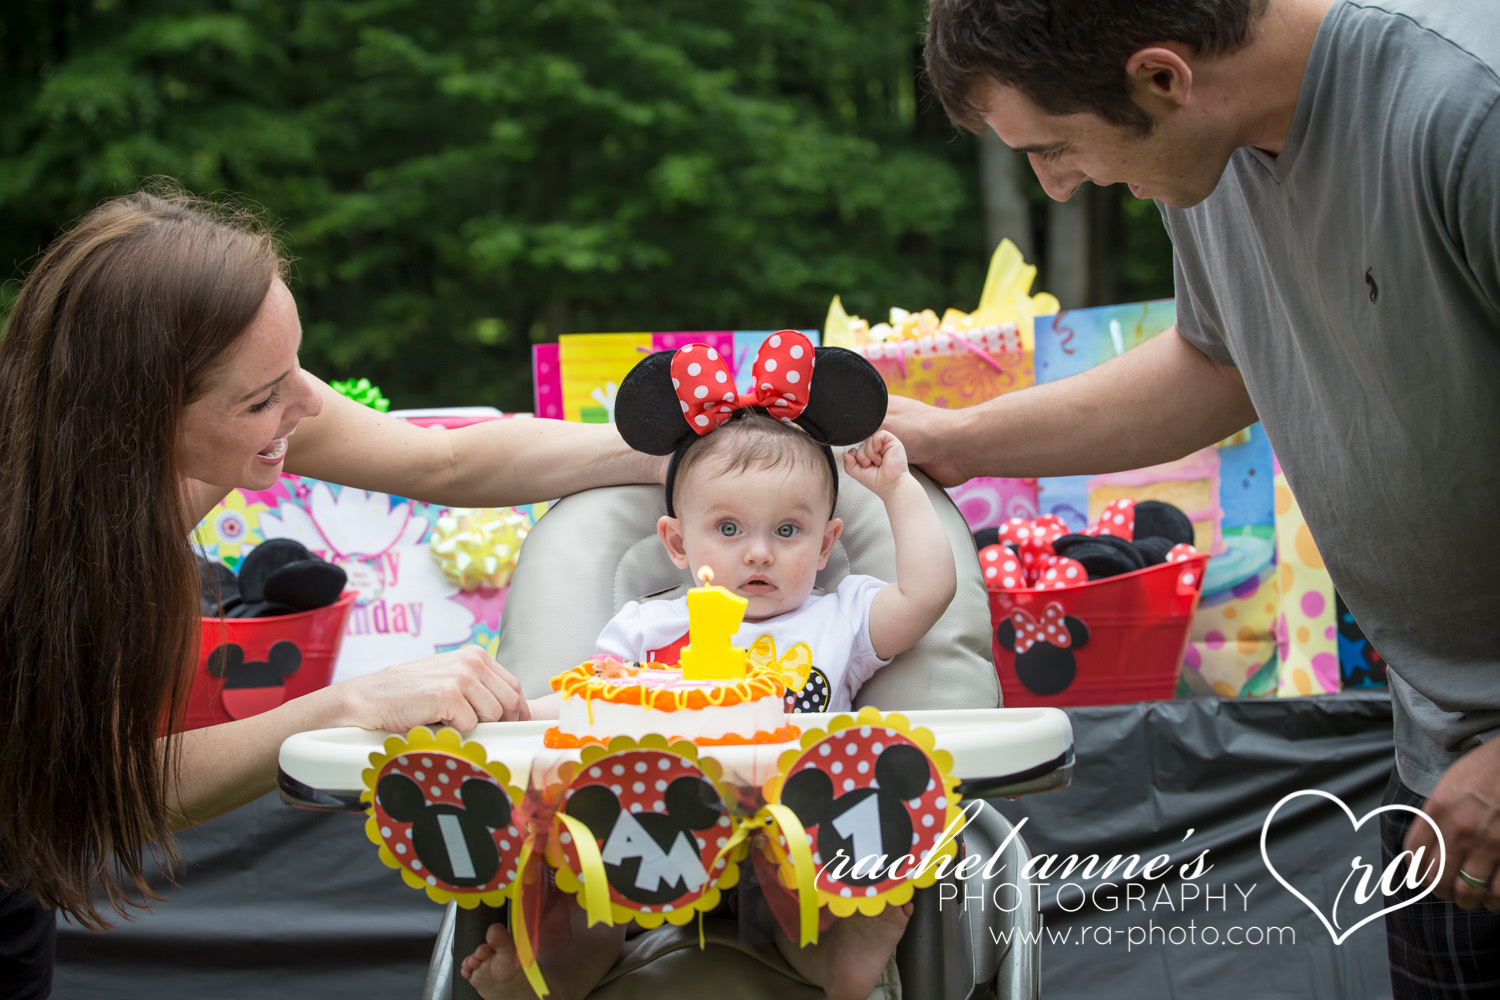 029-CESA-FIRST-BIRTHDAY-PARTY-PHOTOGRAPHY.jpg